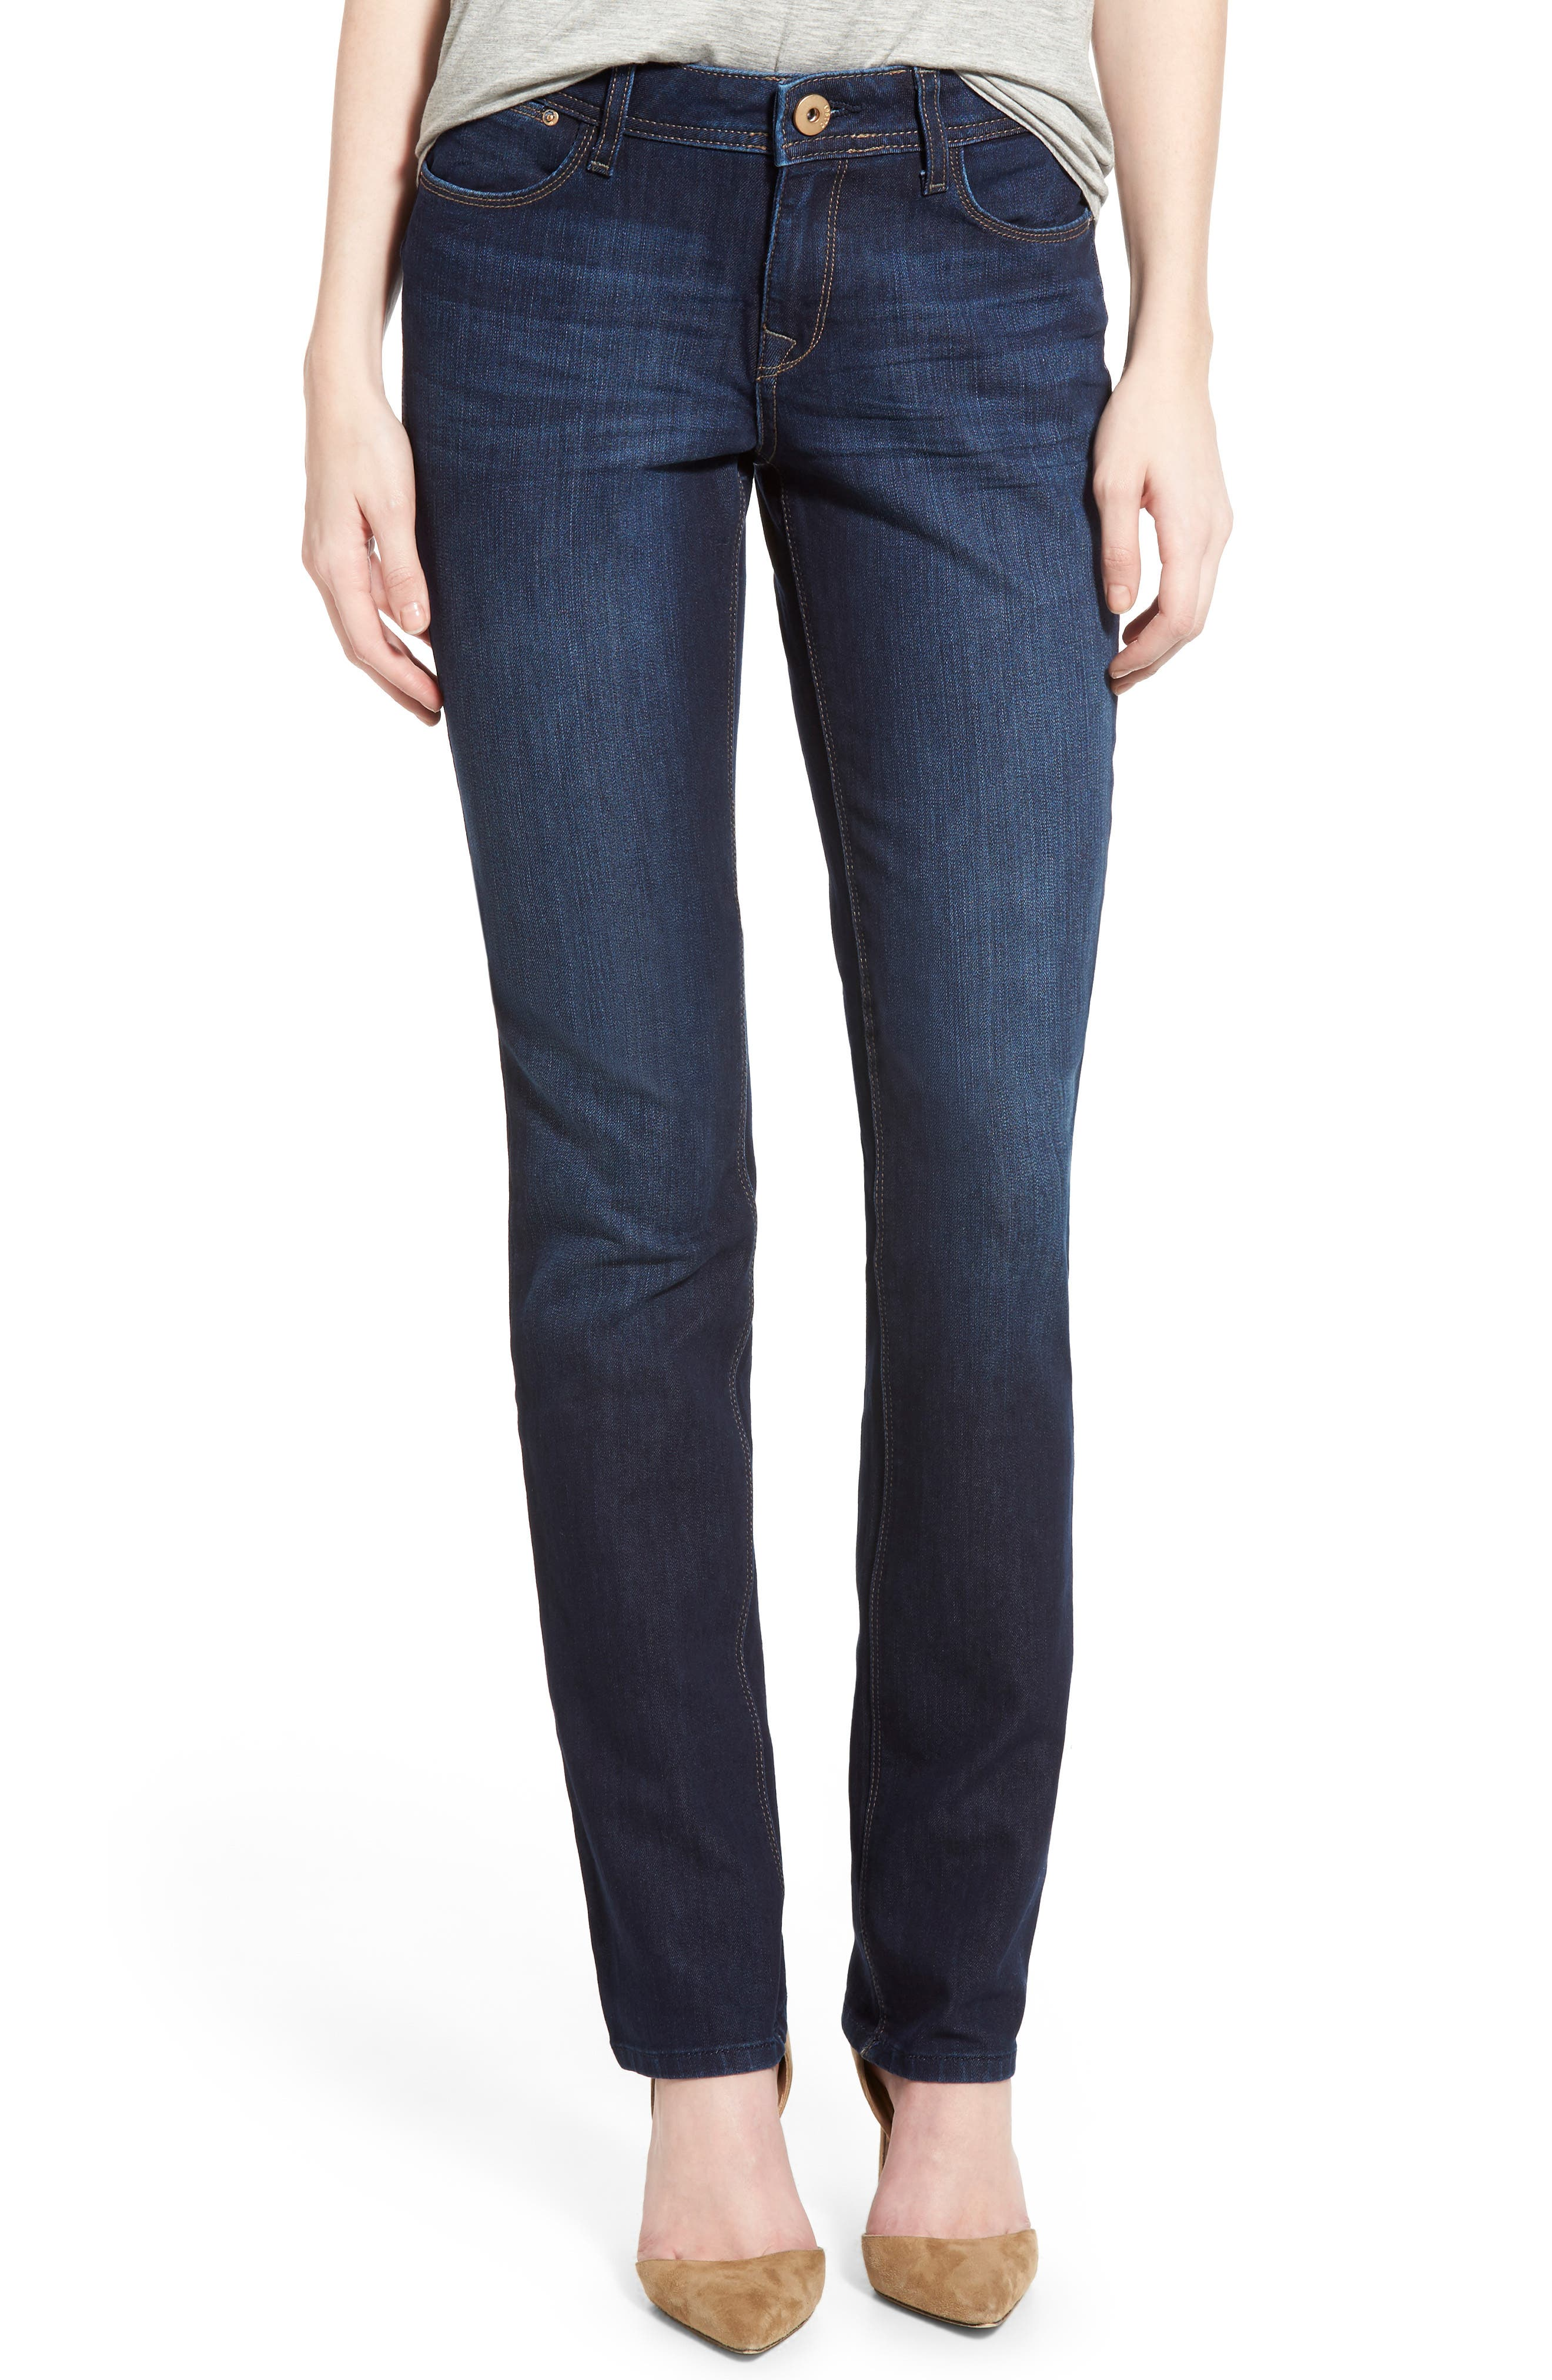 Women's Dl1961 'Coco' Curvy Straight Jeans